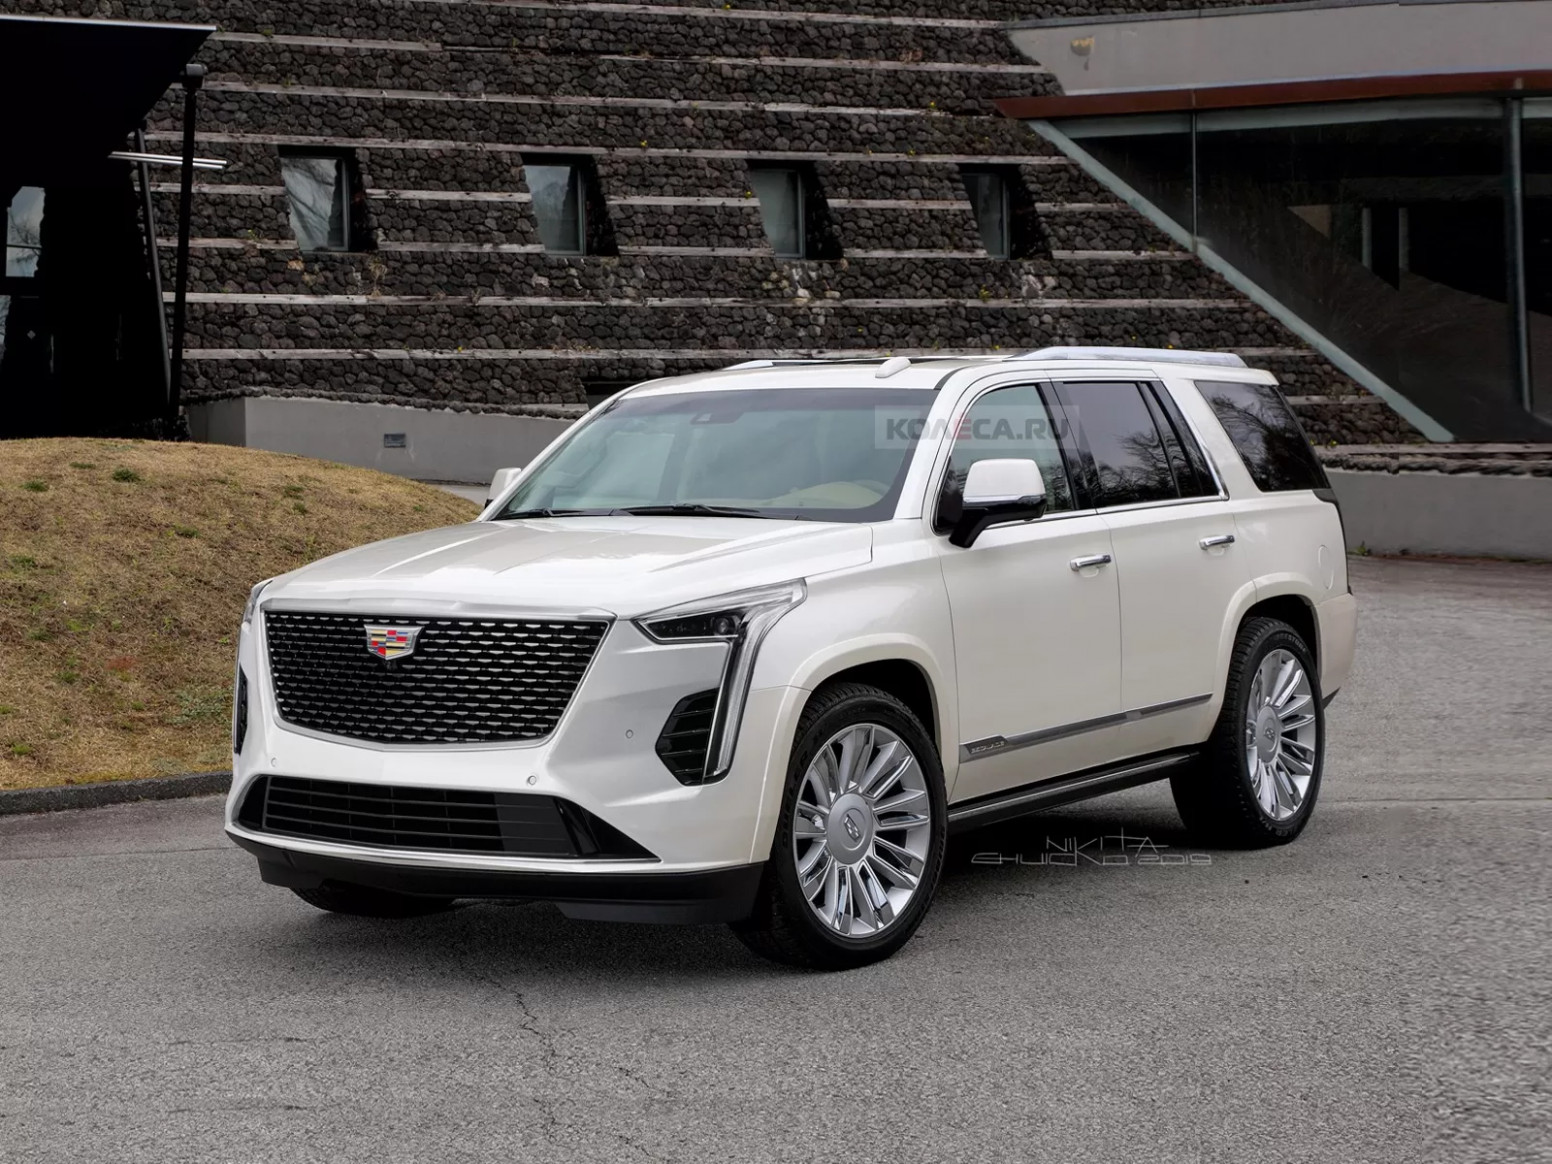 Release Cadillac Escalade 2022 Model